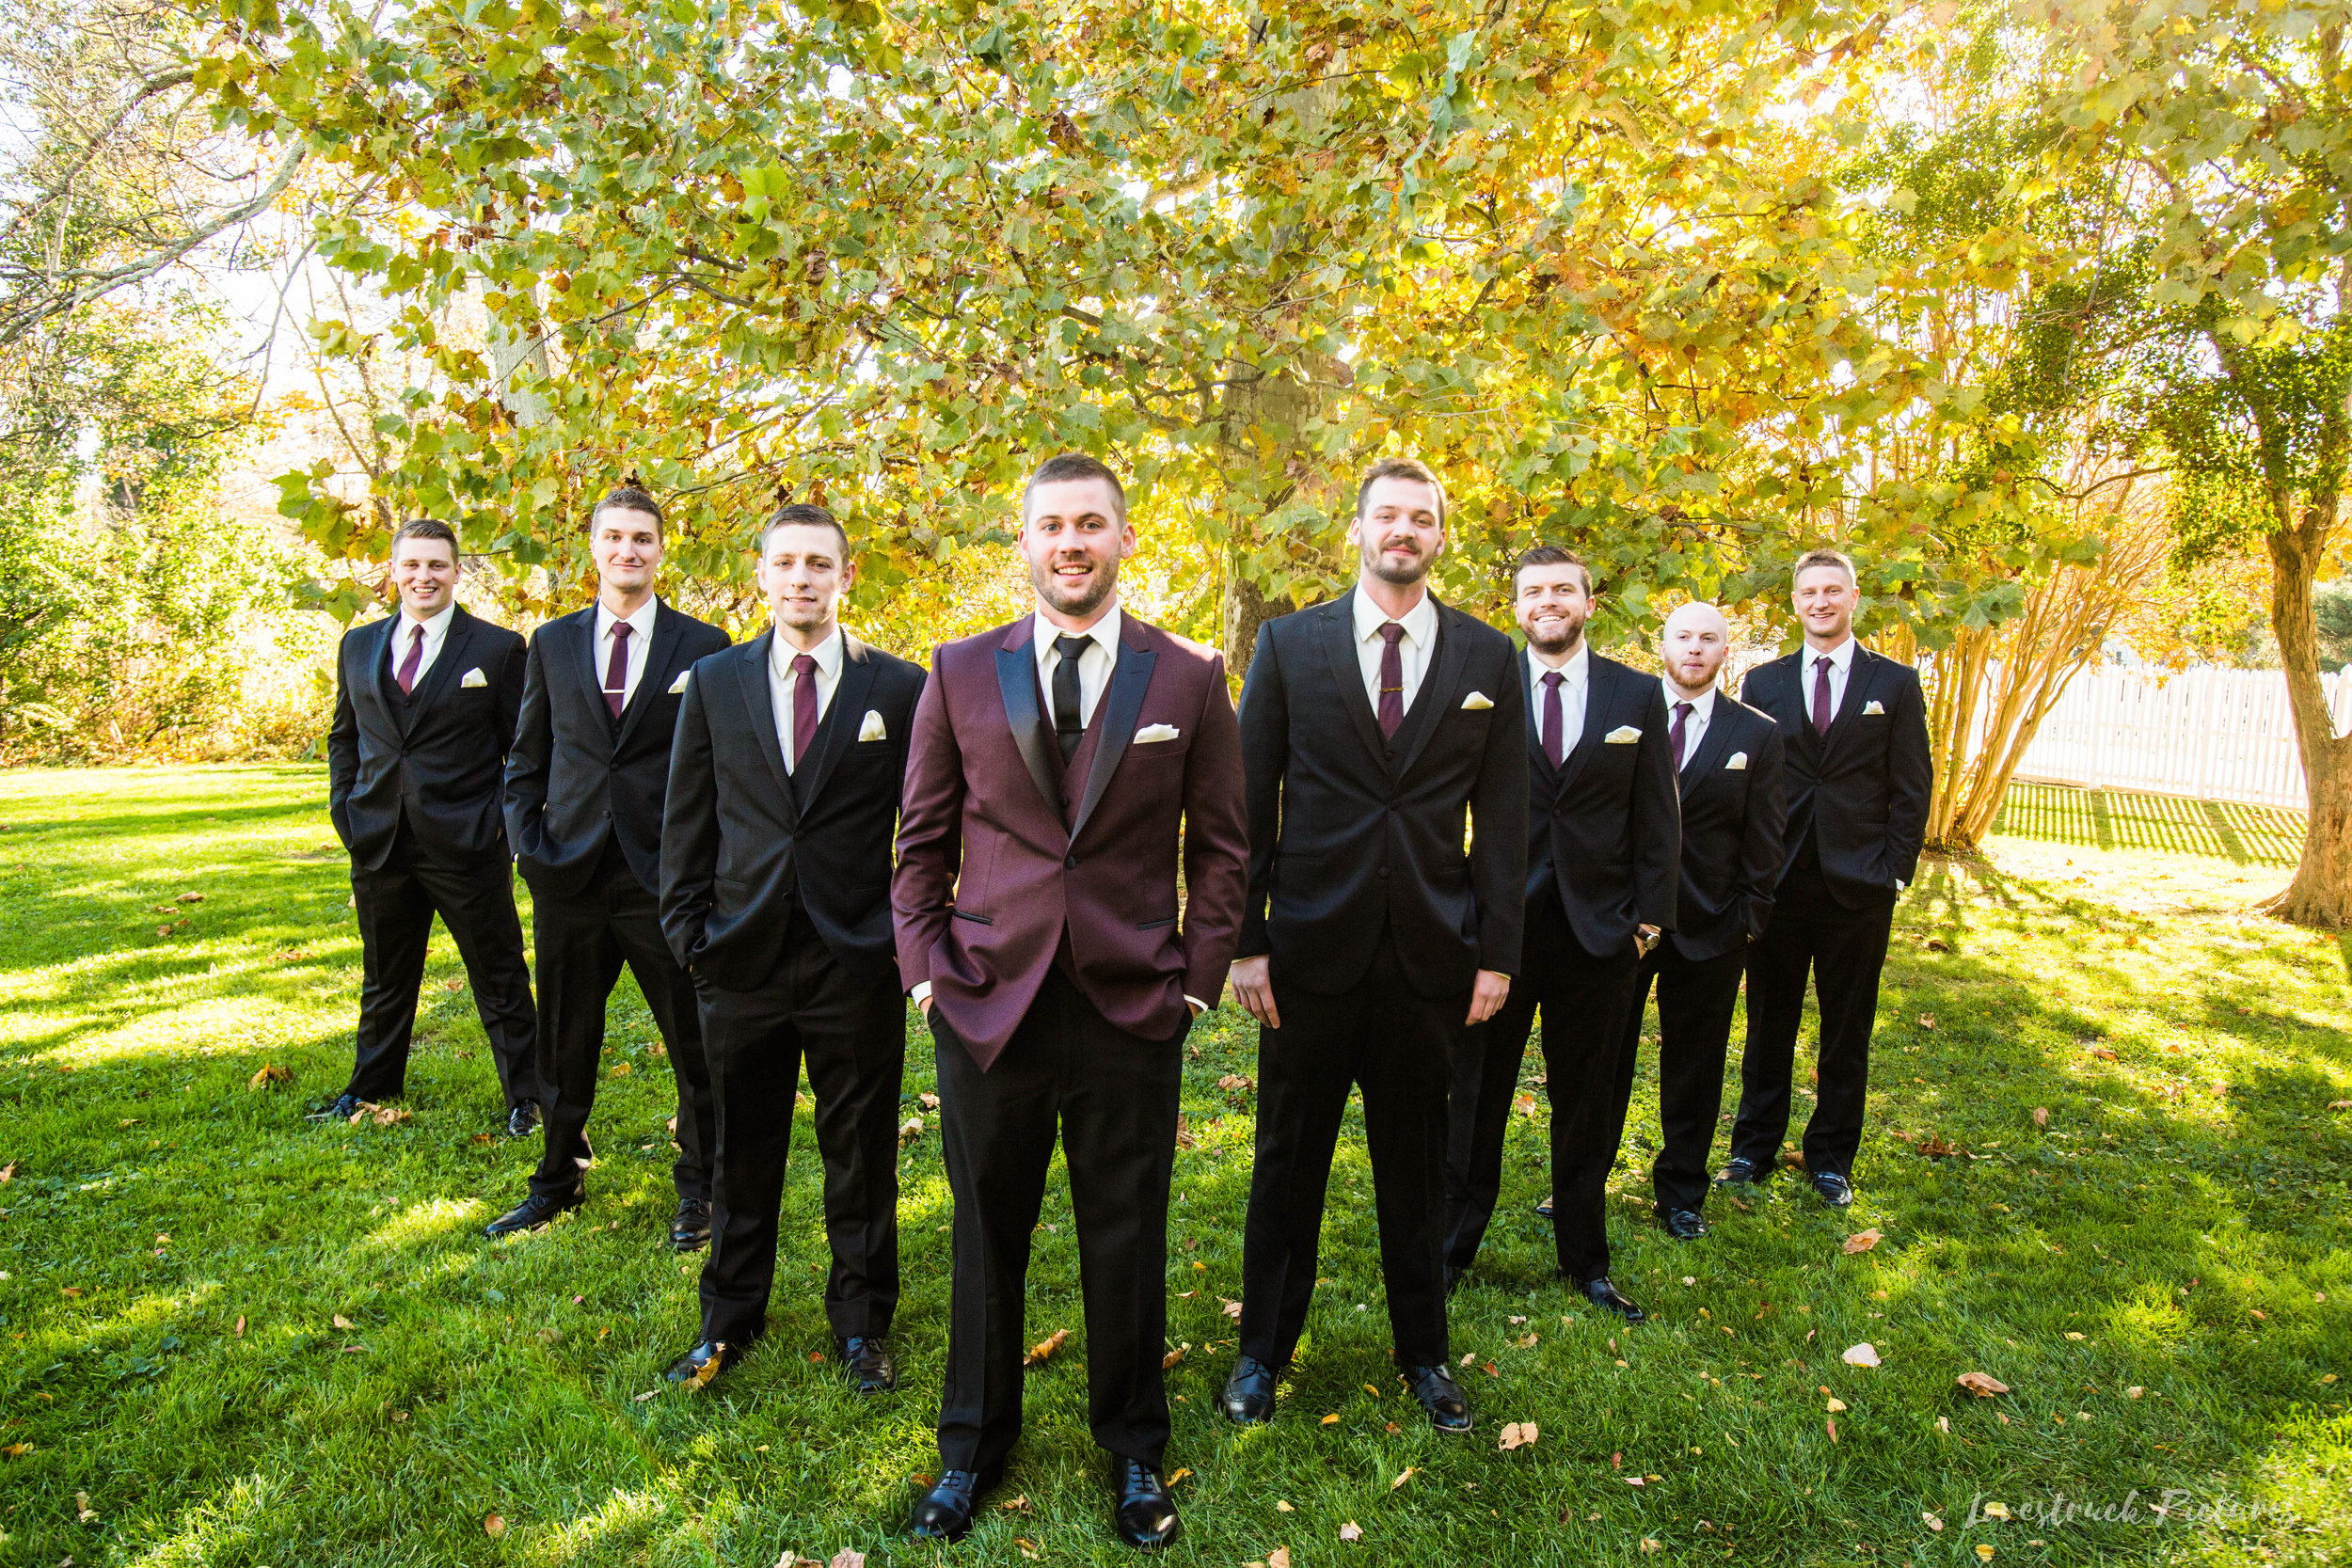 THE_OAKS_ON_THE_WATERFRONT_MARYLAND_WEDDING--8453.jpg